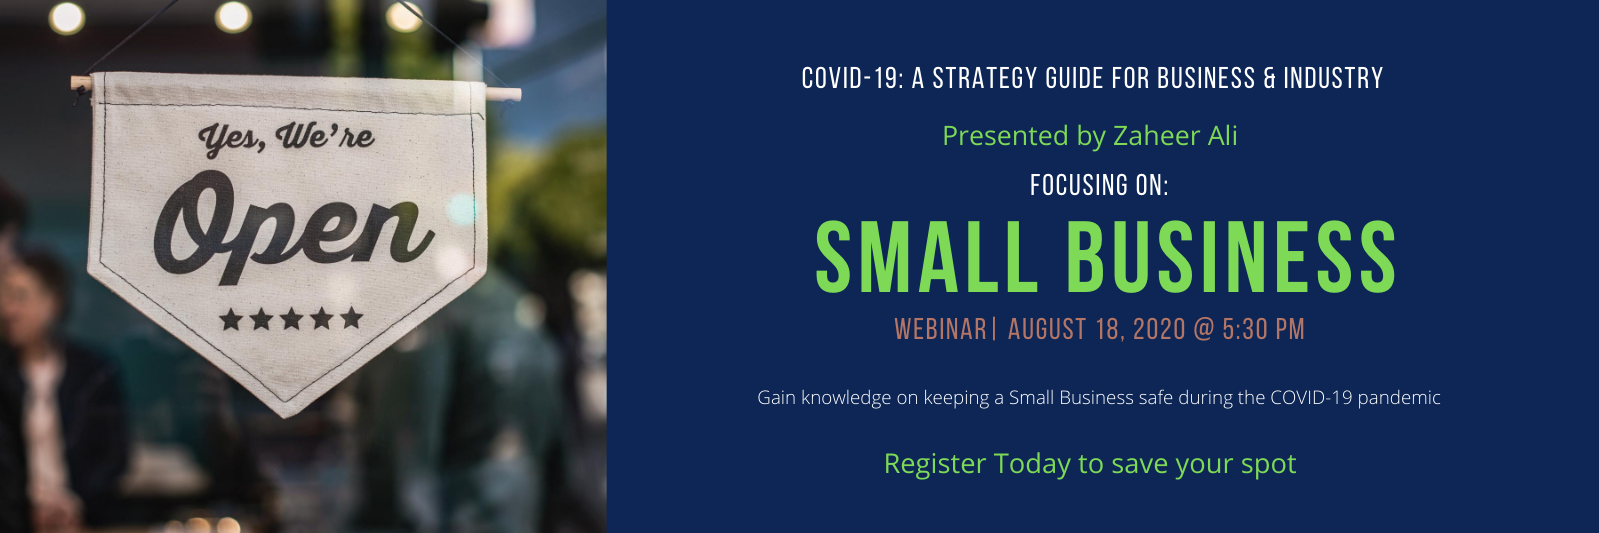 SMBusWebinar_-August-18.-2020-at-5_30-pm.png